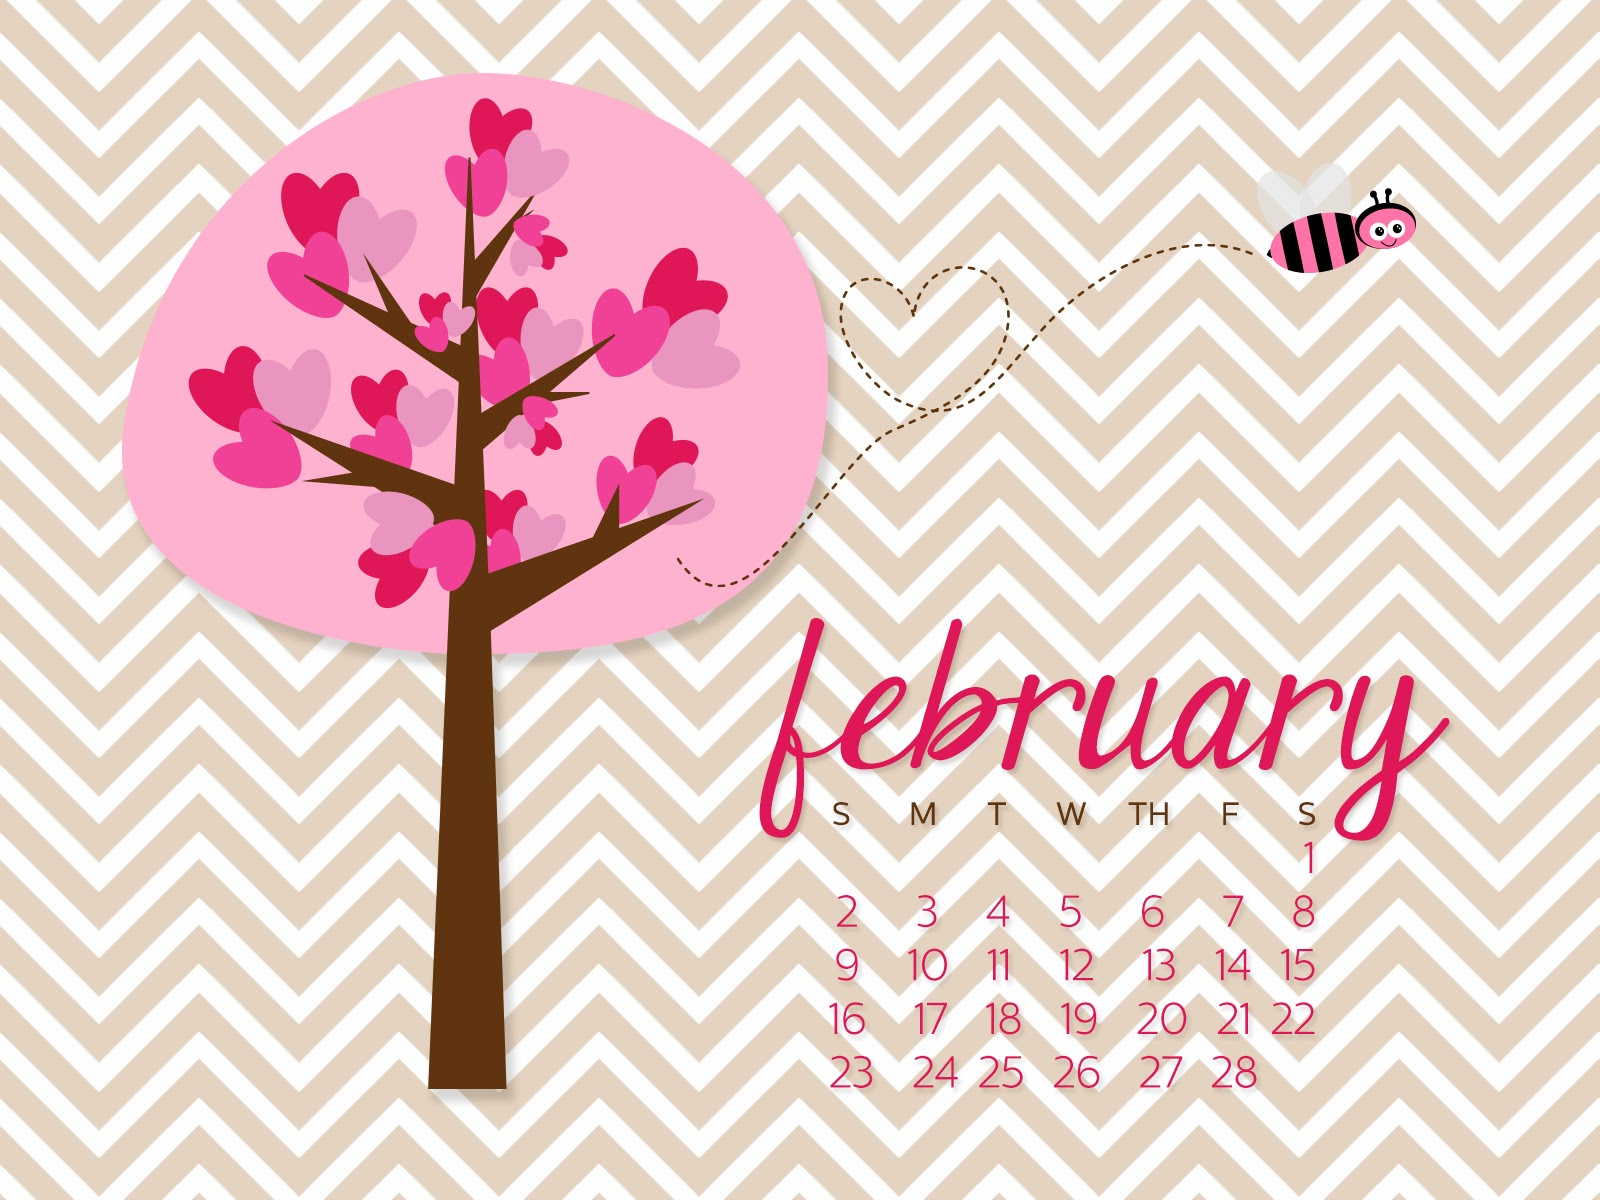 2014 desktop wallpaper calendar simply brenna